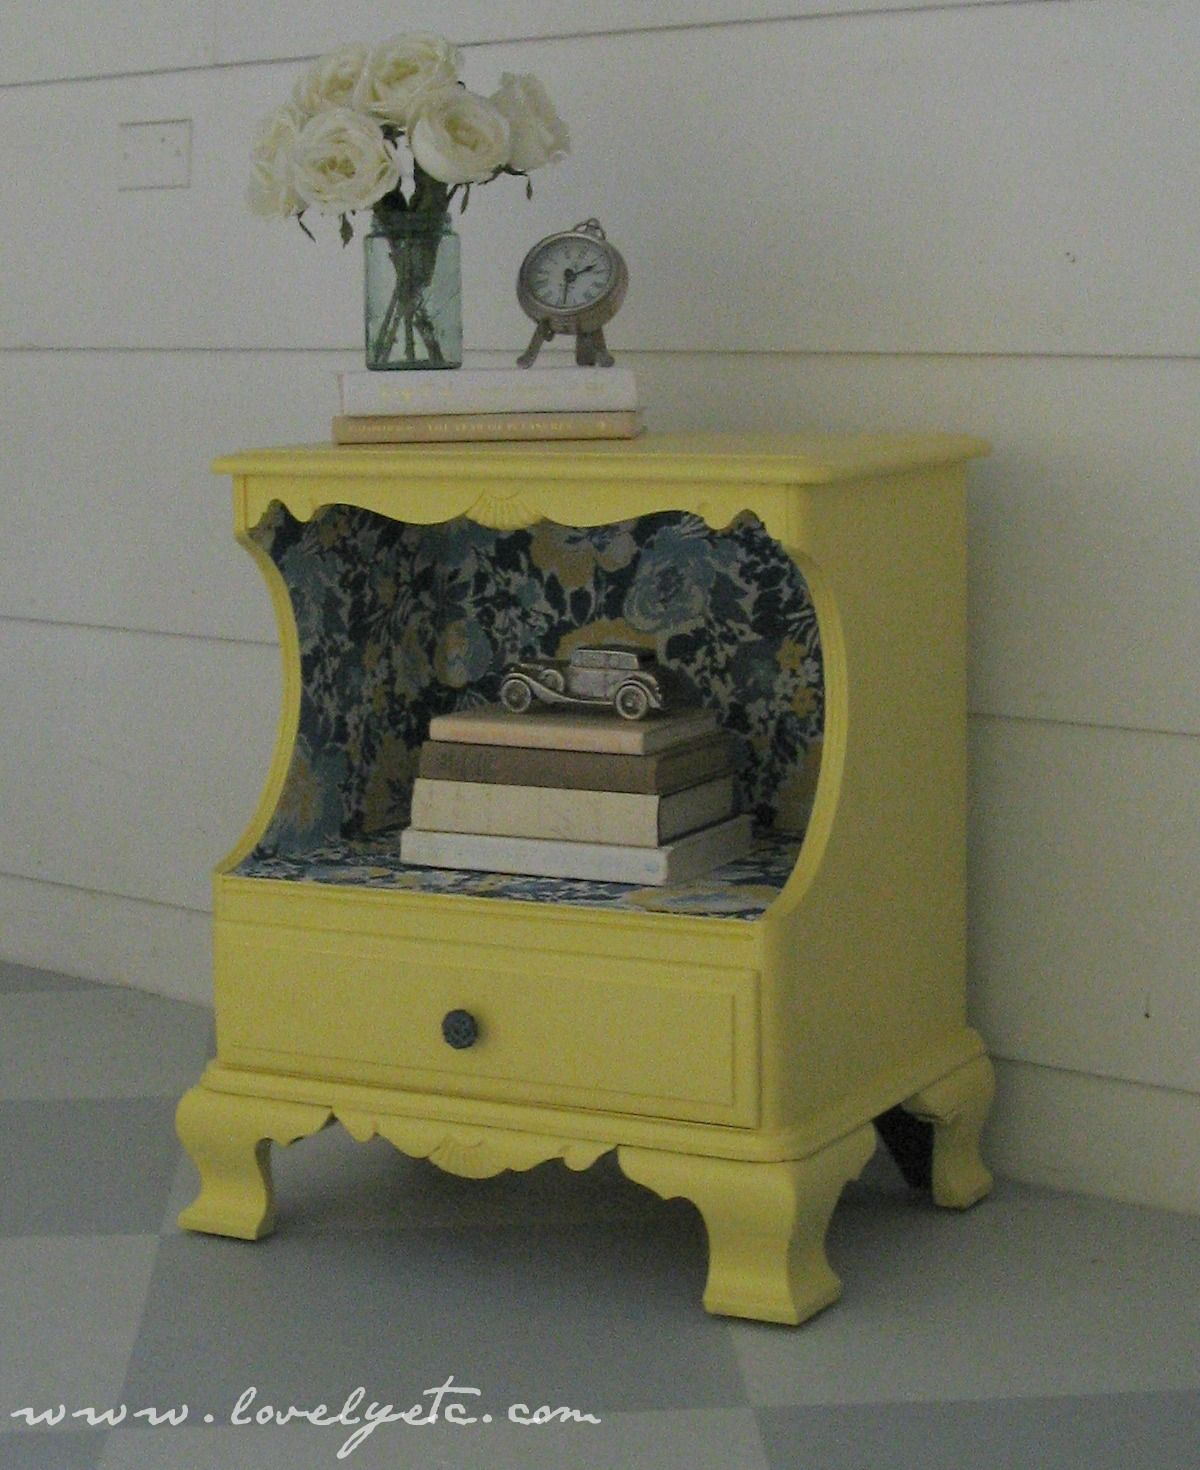 Best 25+ Refinished nightstand ideas on Pinterest : Refurbished night stand, Behr home depot and ...